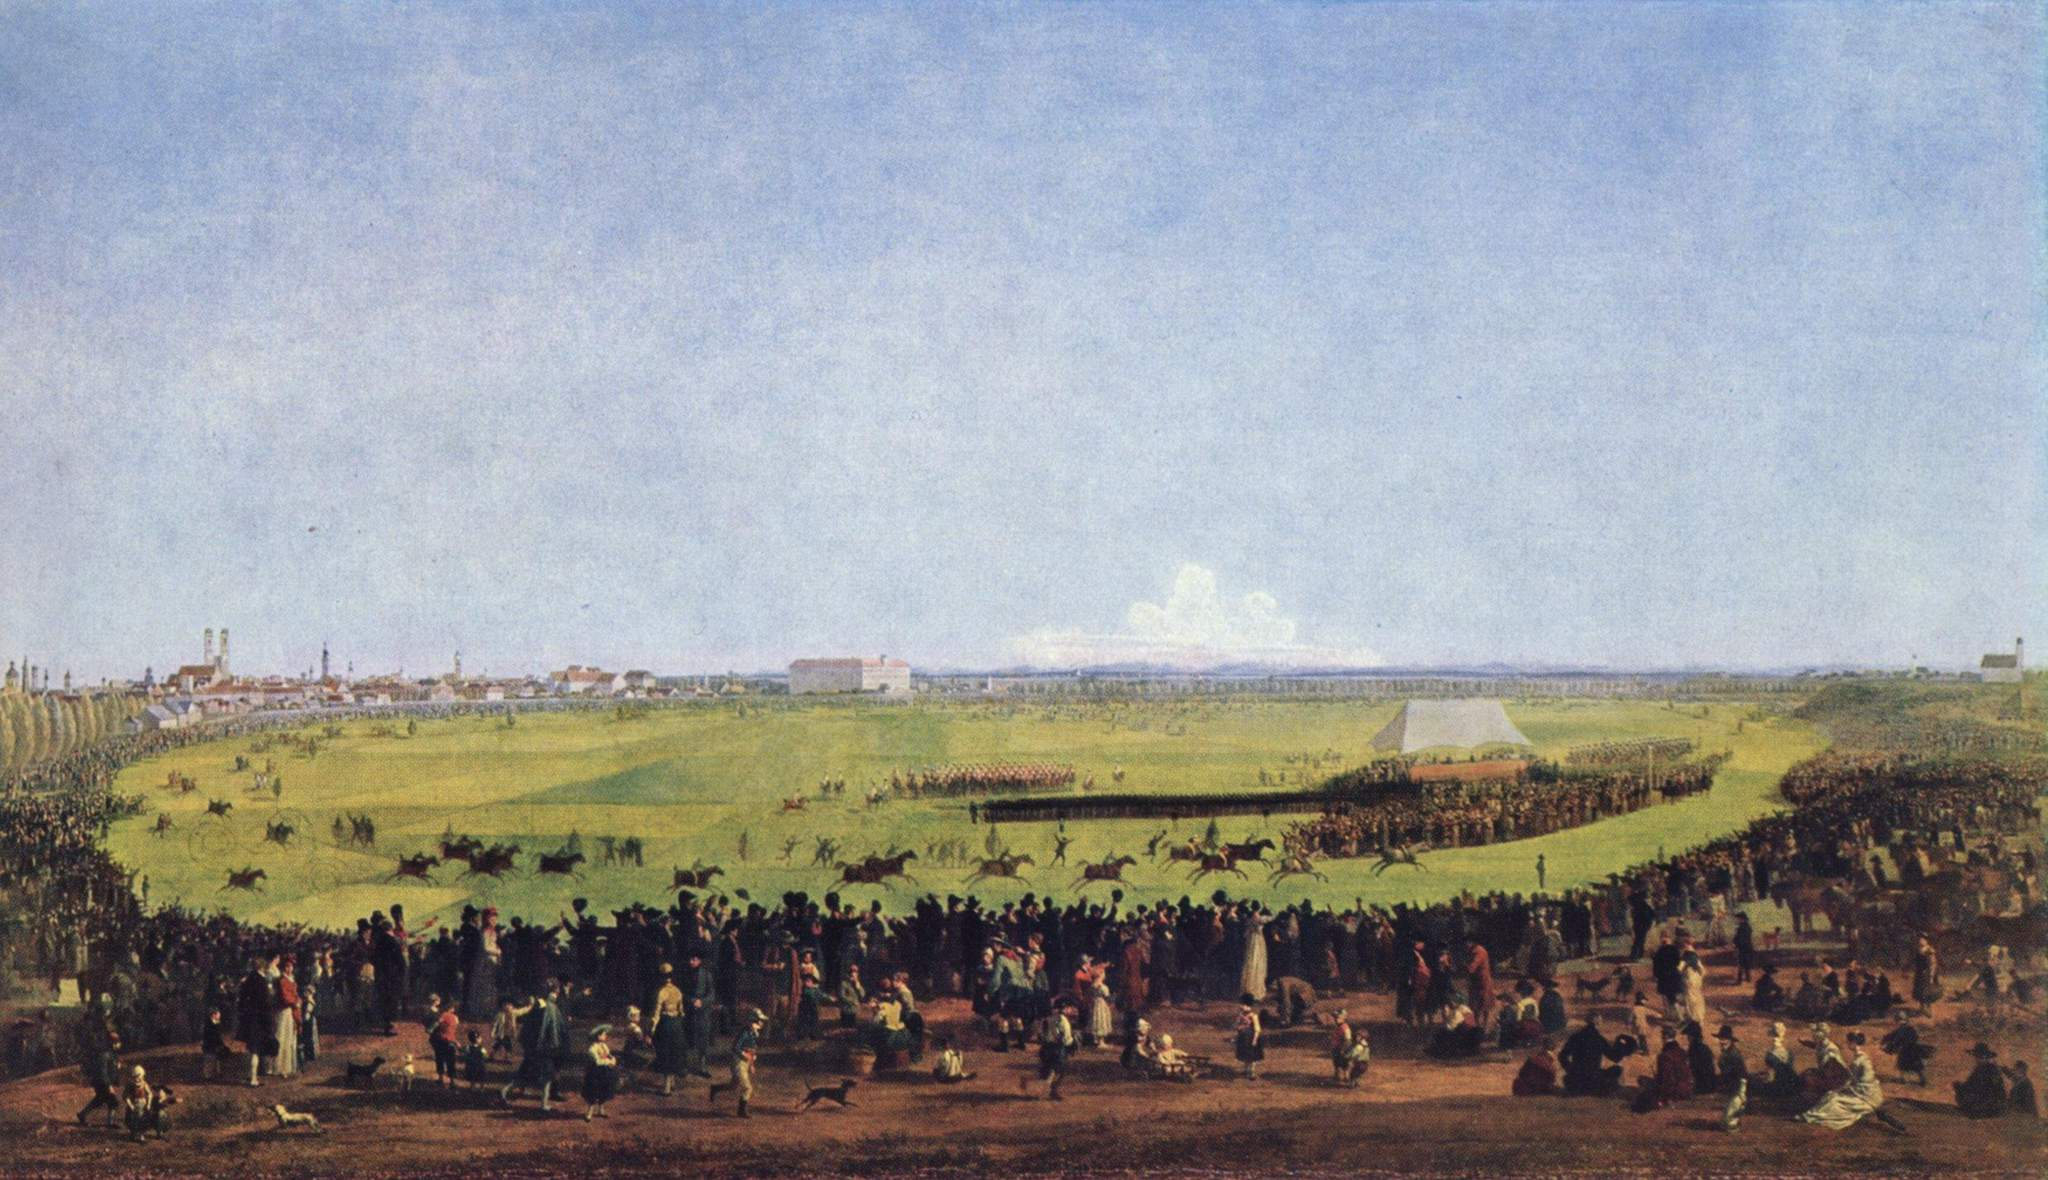 The first horse race on the Theresienwiese in Munich on 17 October 1810 (first Oktoberfest) // Painting by Wilhelm Alexander Wolfgang von Kobell